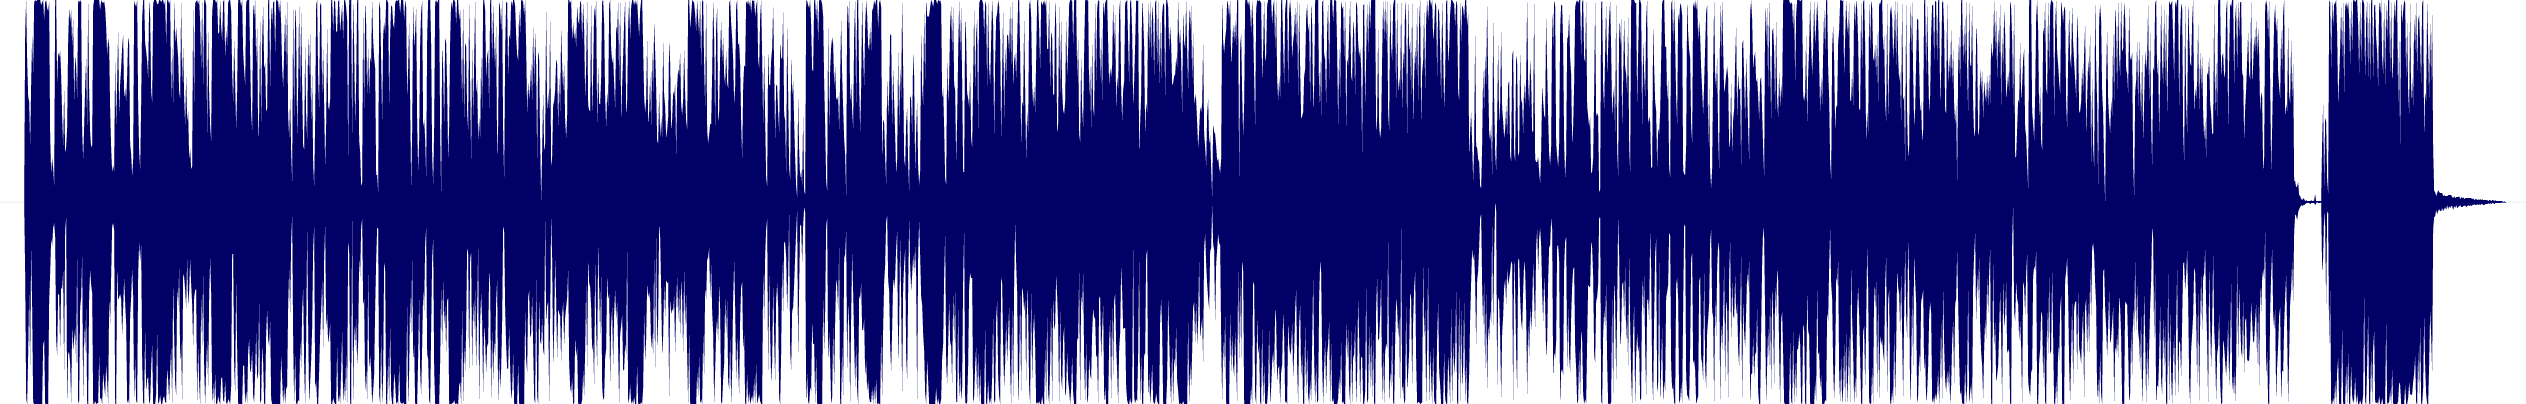 waveform of track #112279